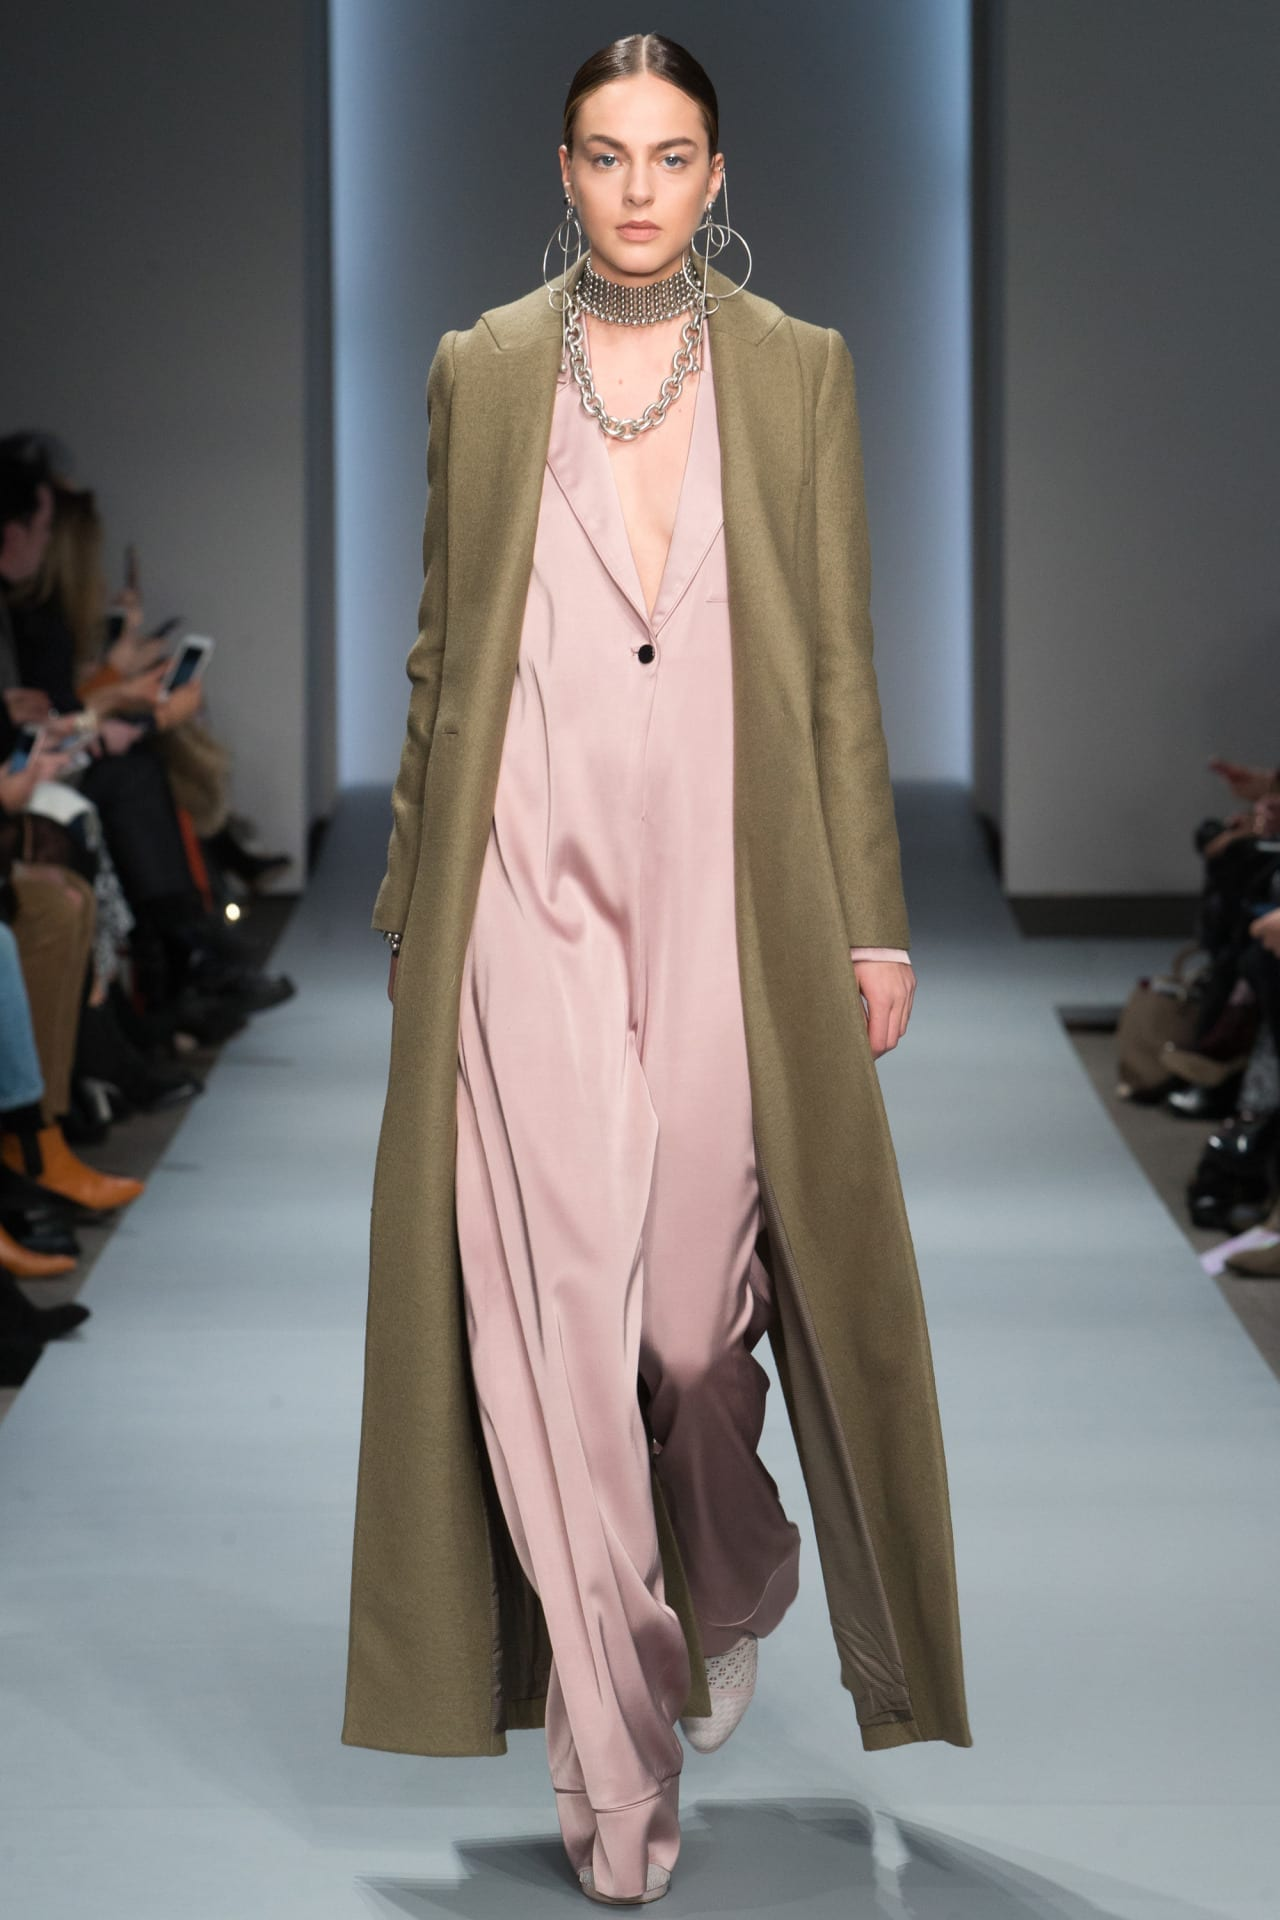 5 trend autunno inverno 2016, theladycracy.it, elisa bellino, zimmerman fall 2016, 5 trend autunno inverno 2016, theladycracy.it, elisa bellino, alice and olivia fall 2016, fashion blog italia, fashion blogger italiane, cosa andrà di moda il prossimo autunno